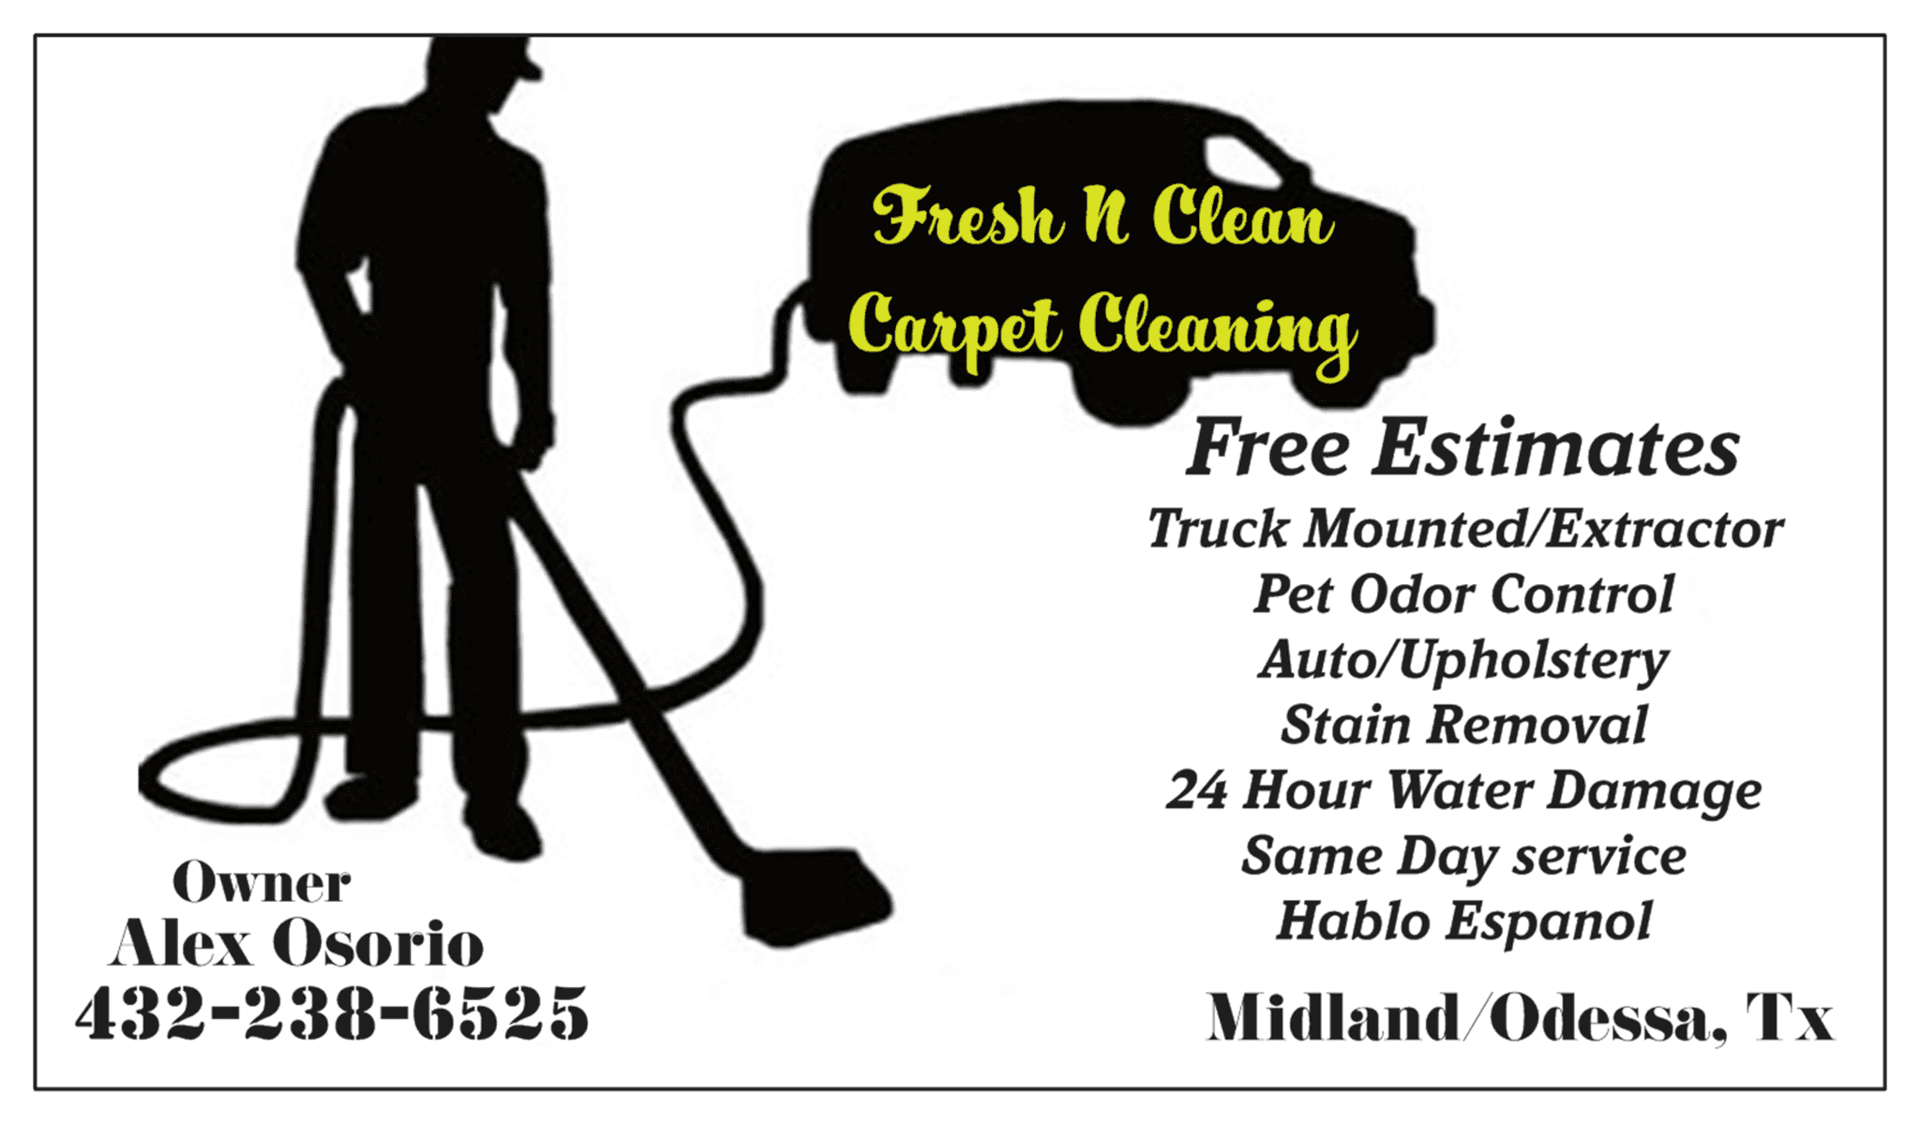 . Carpet Cleaning Odessa   Midland  TX   Stain Removal   Fresh N Clean